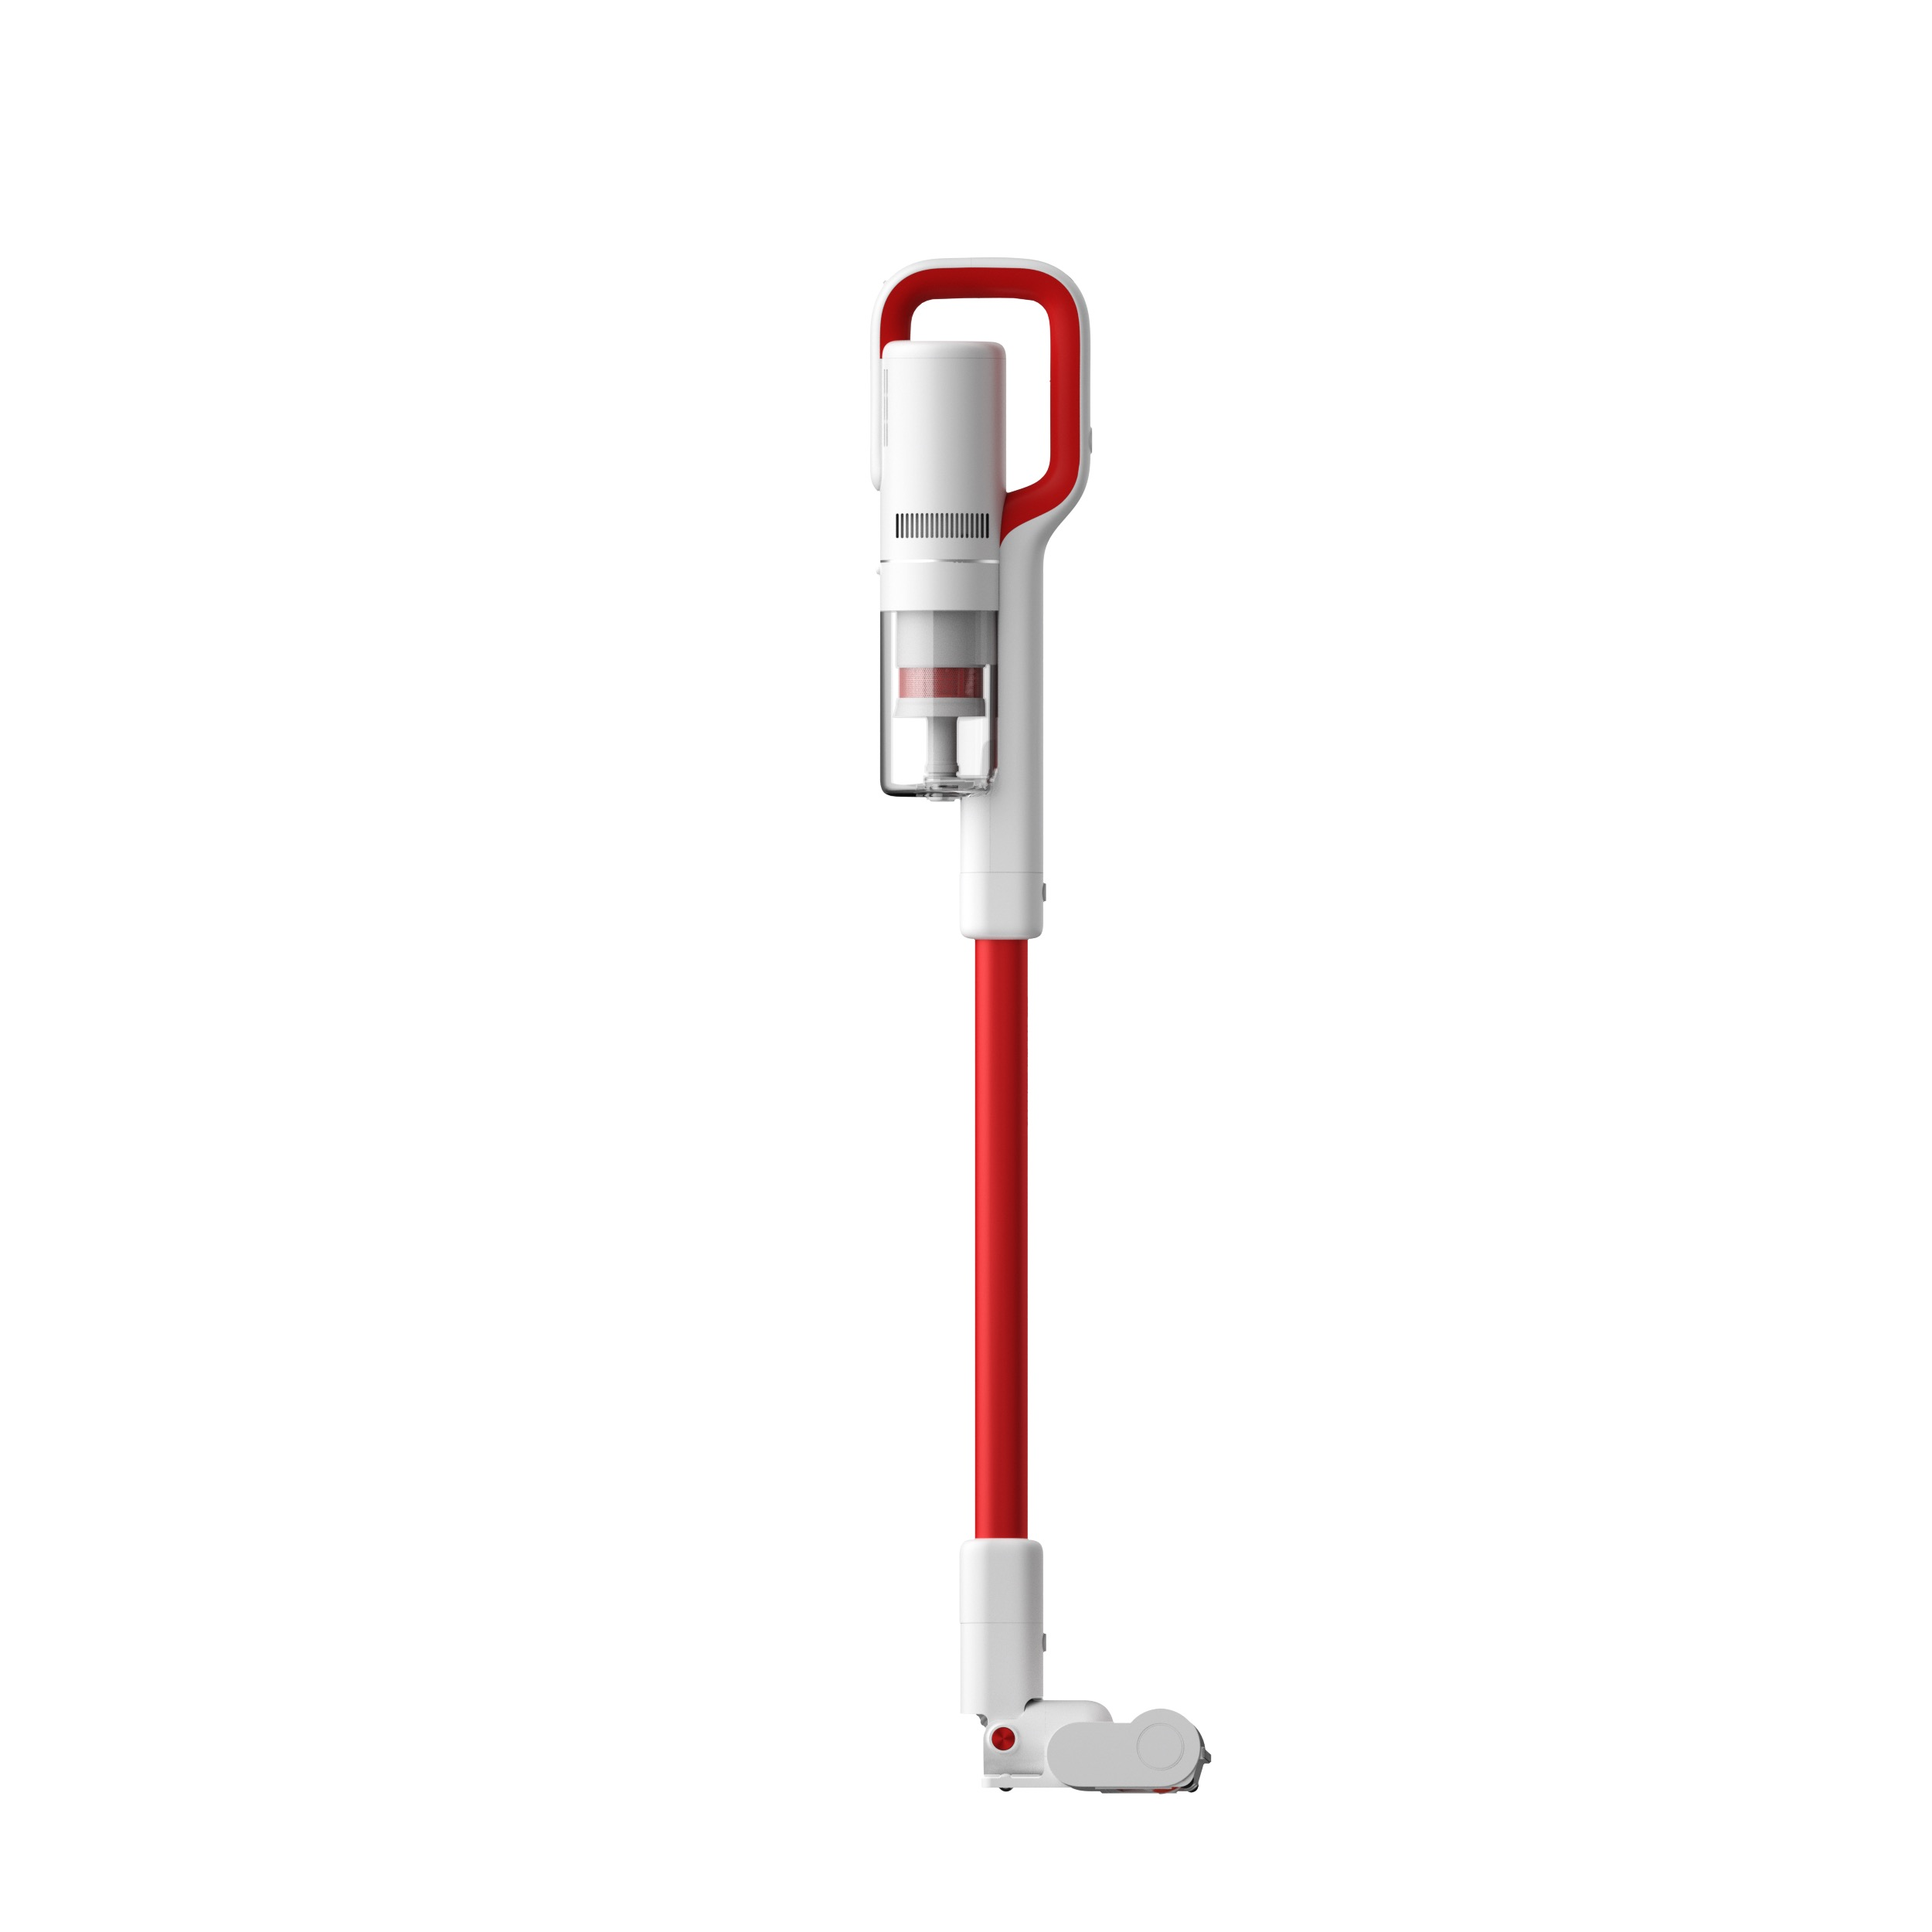 Roidmi S1 Special 120aw Cordless Stick Vacuum Cleaner Walmart Canada